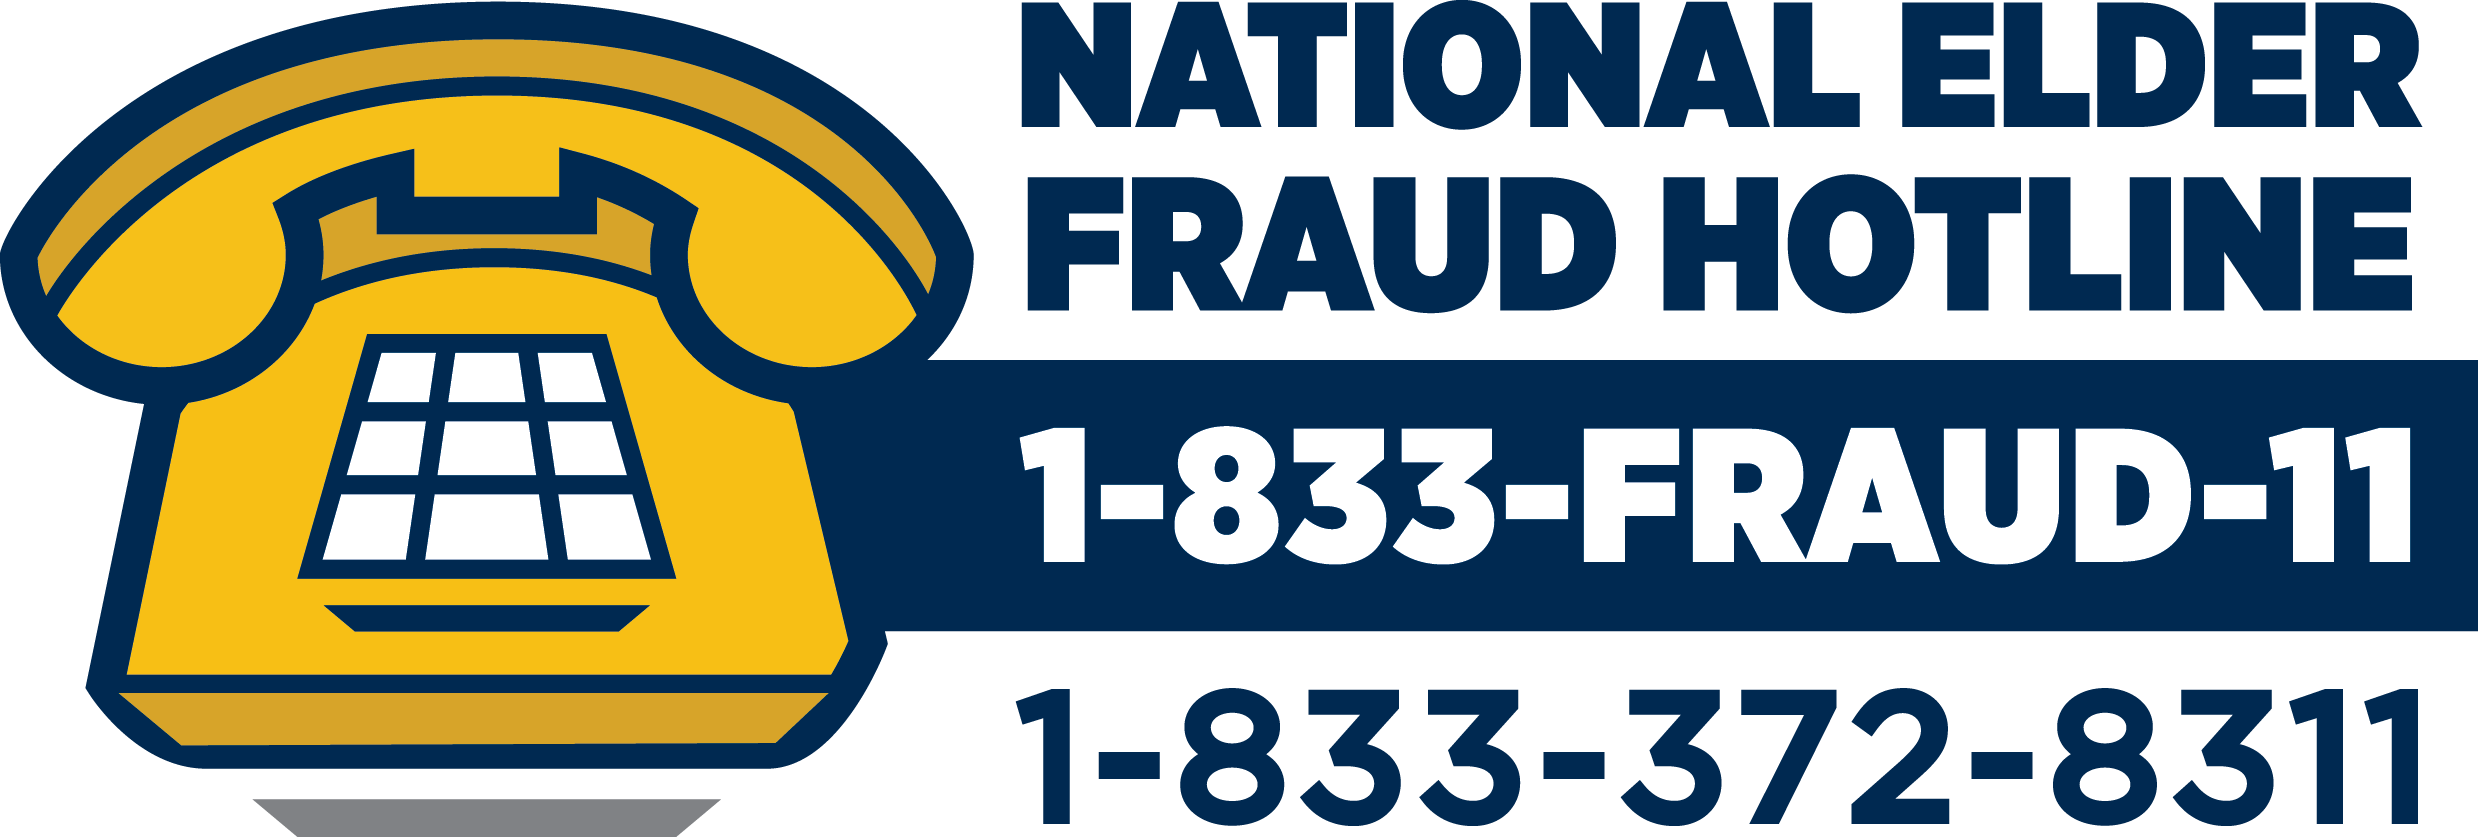 National Elder Fraud Hotline 1-833-FRAUD-11 or 1-833-372-8311